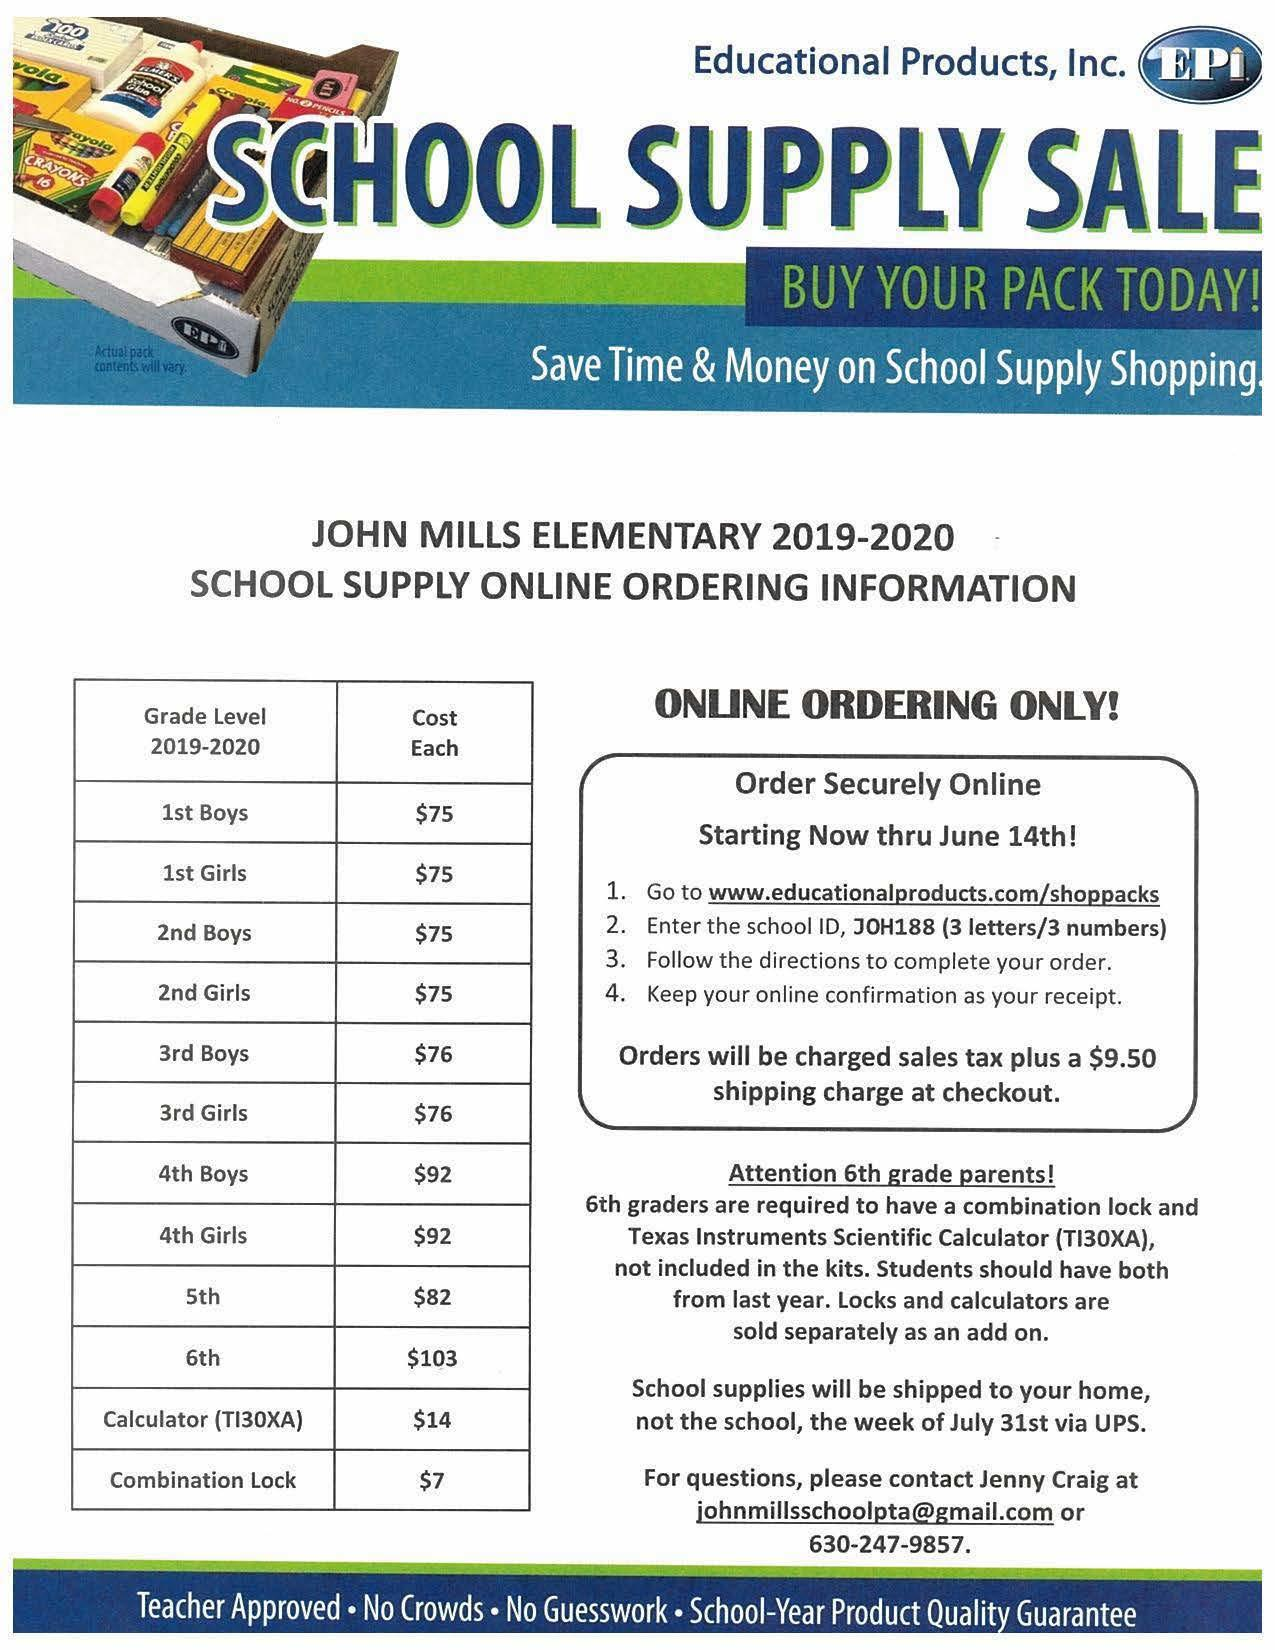 John Mills school supply ordering flyer